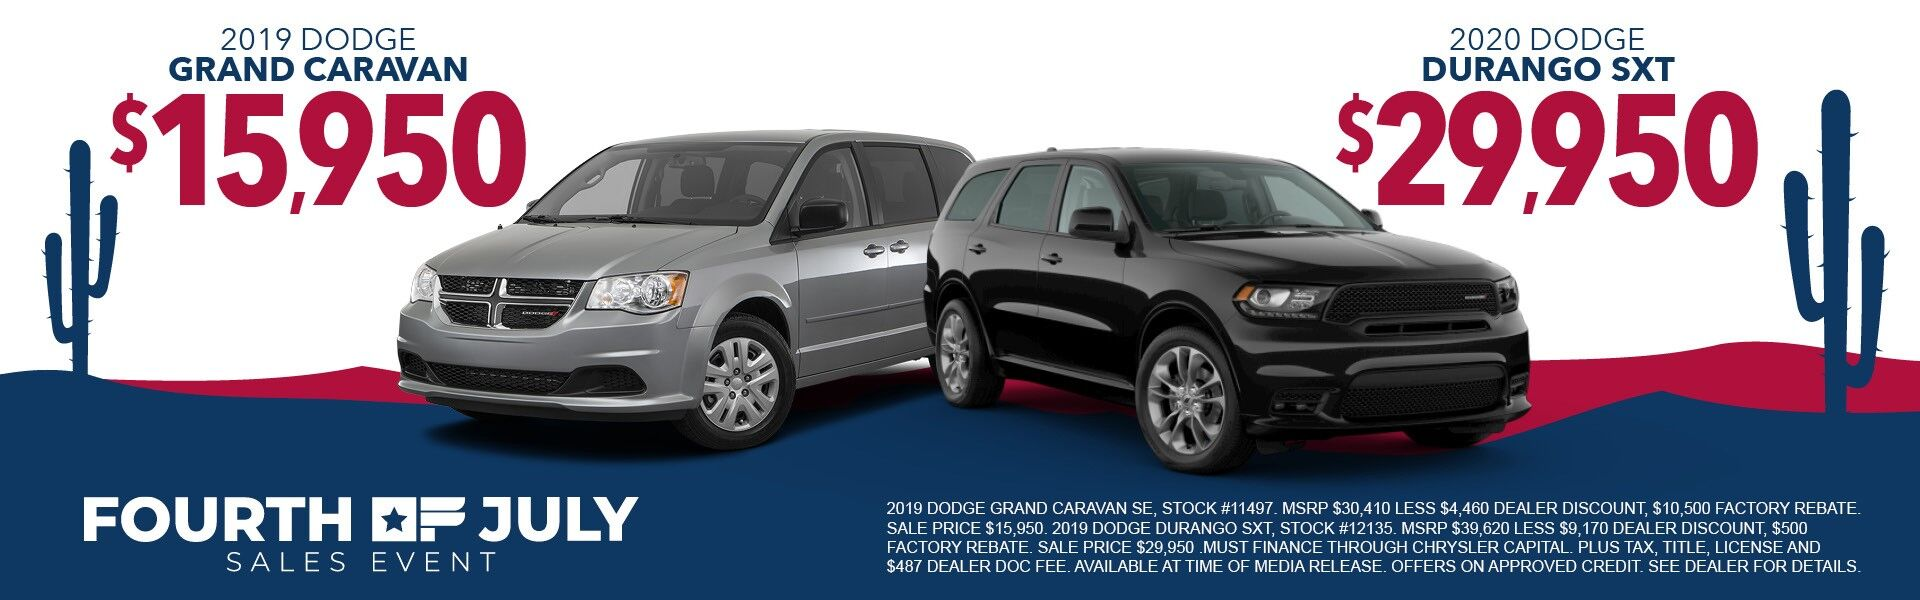 19 Dodge Grand Caravan and Durango